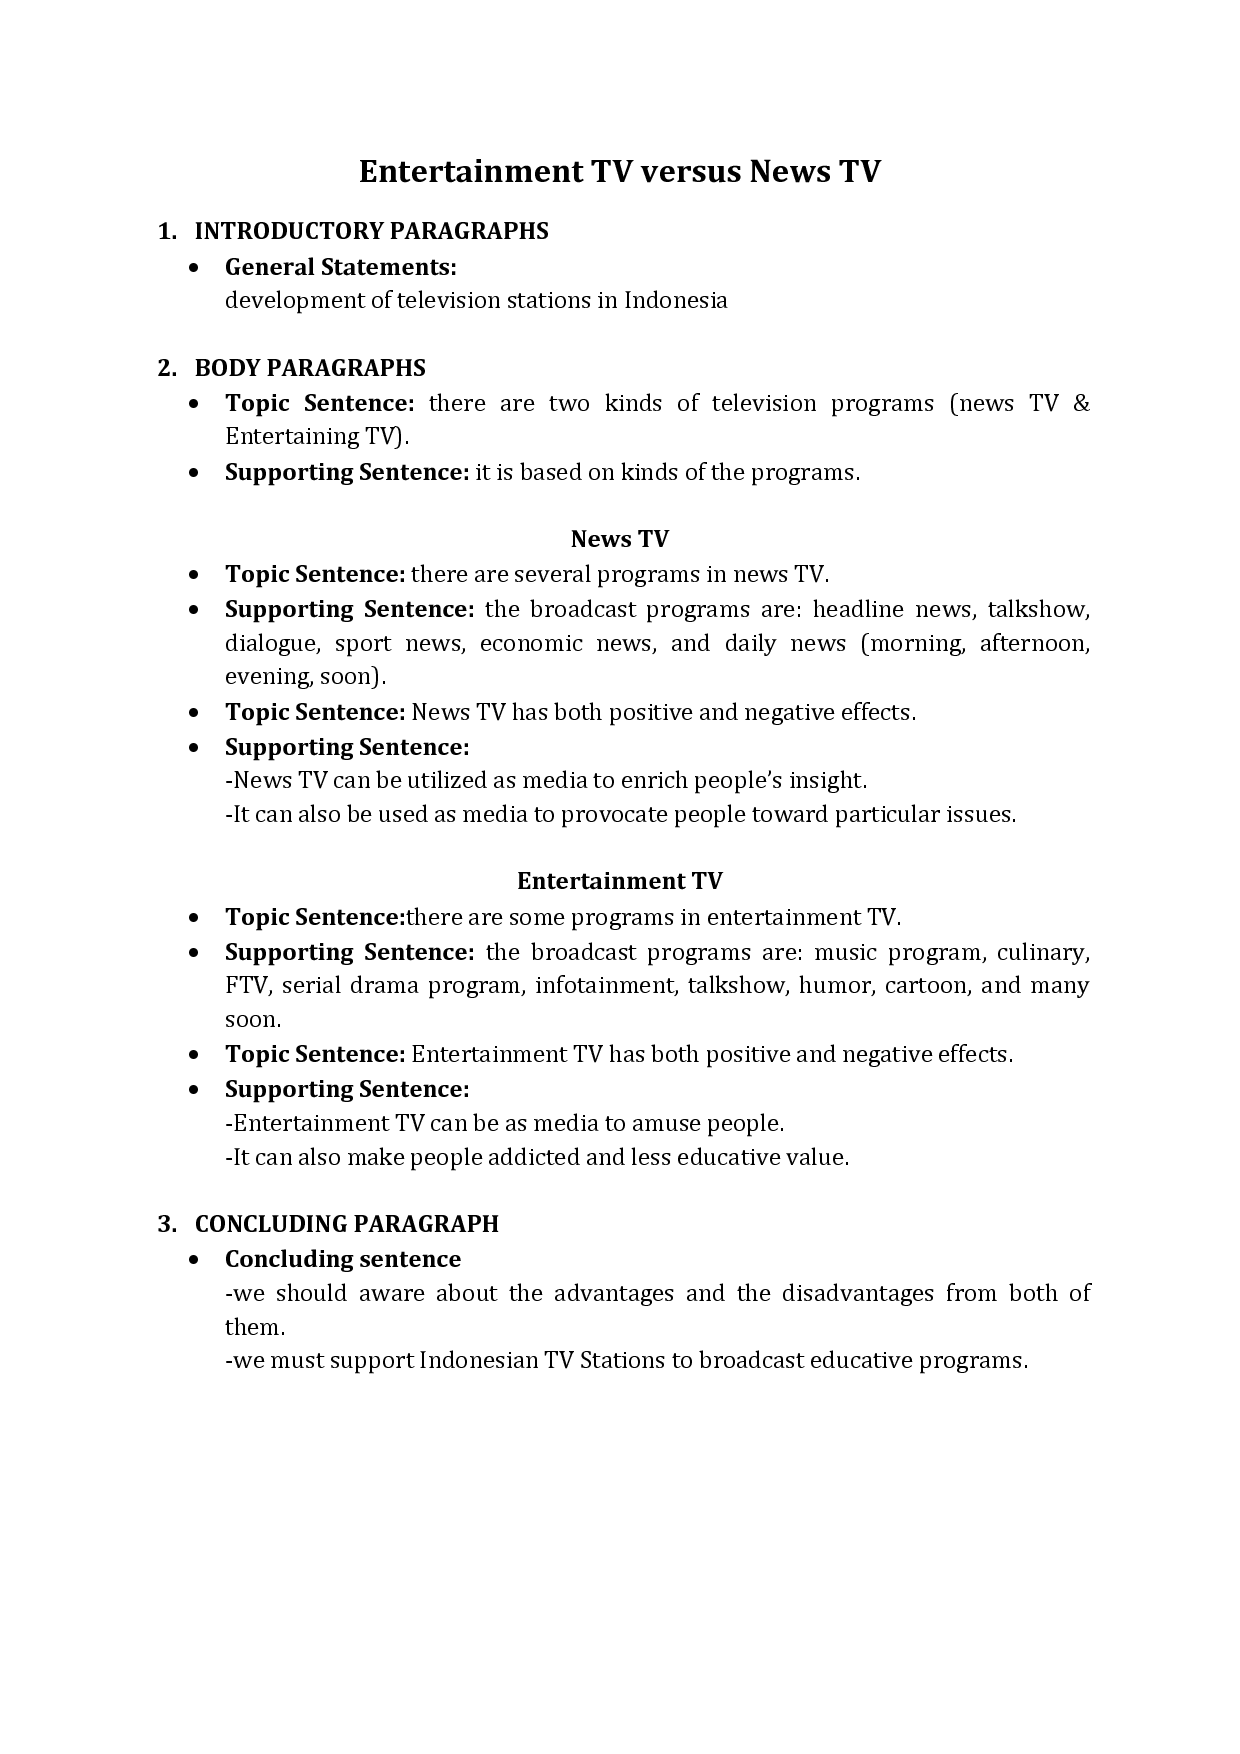 005 Fbunmxinib How To Write An Essay Outline Excellent In Mla Format For University Full